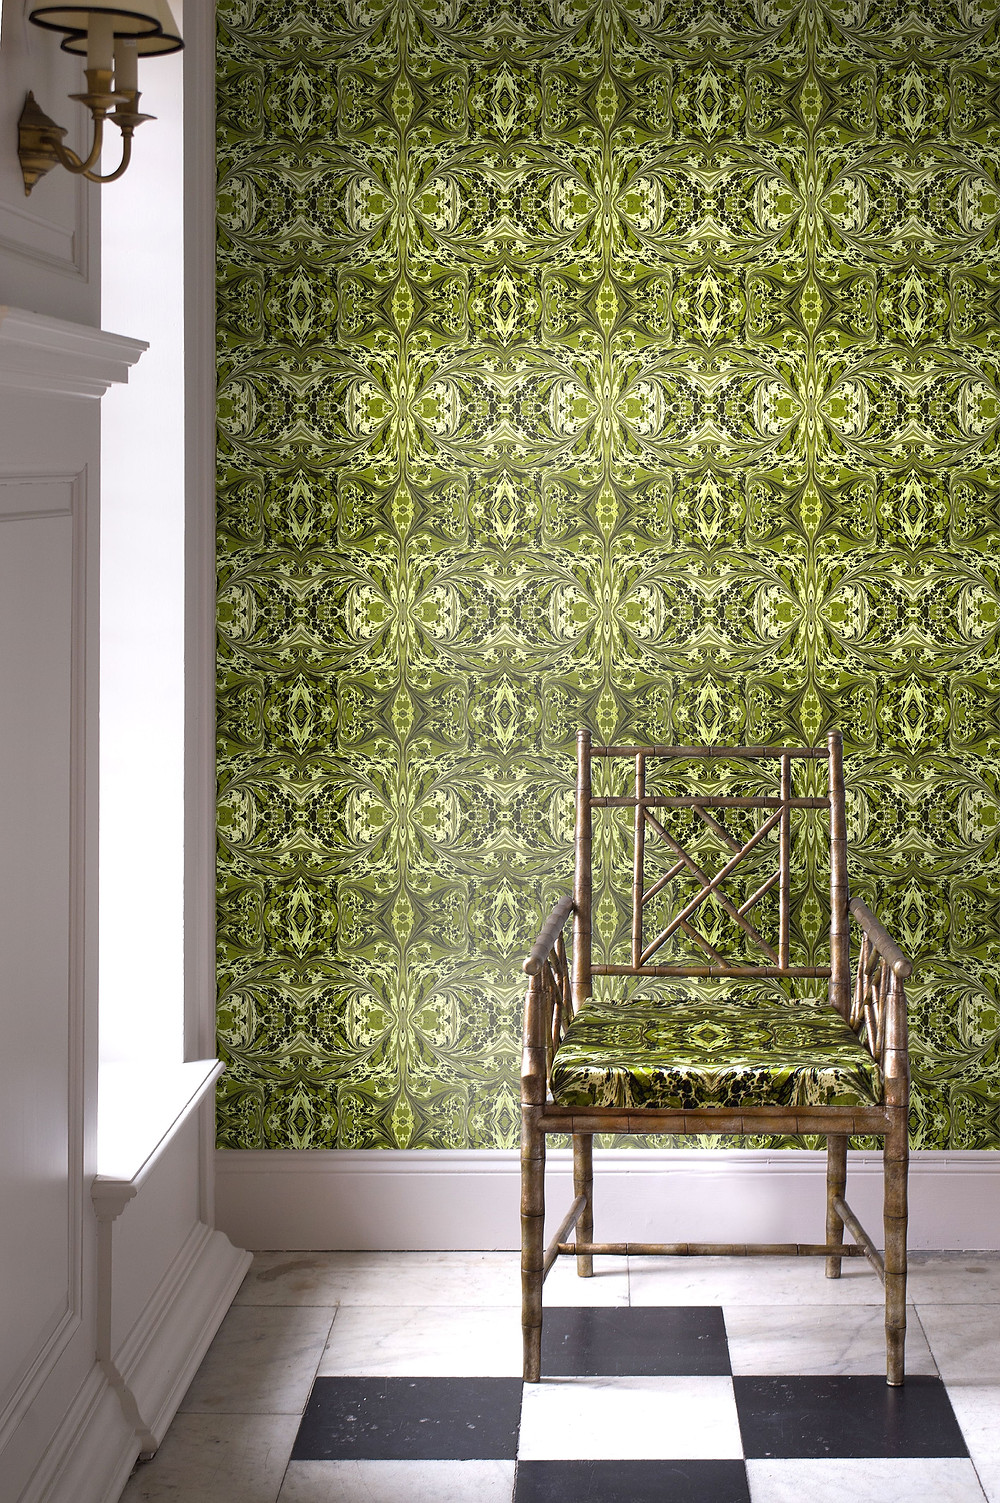 khaki fantasy green wallpaper and fabric by Susi Bellamy